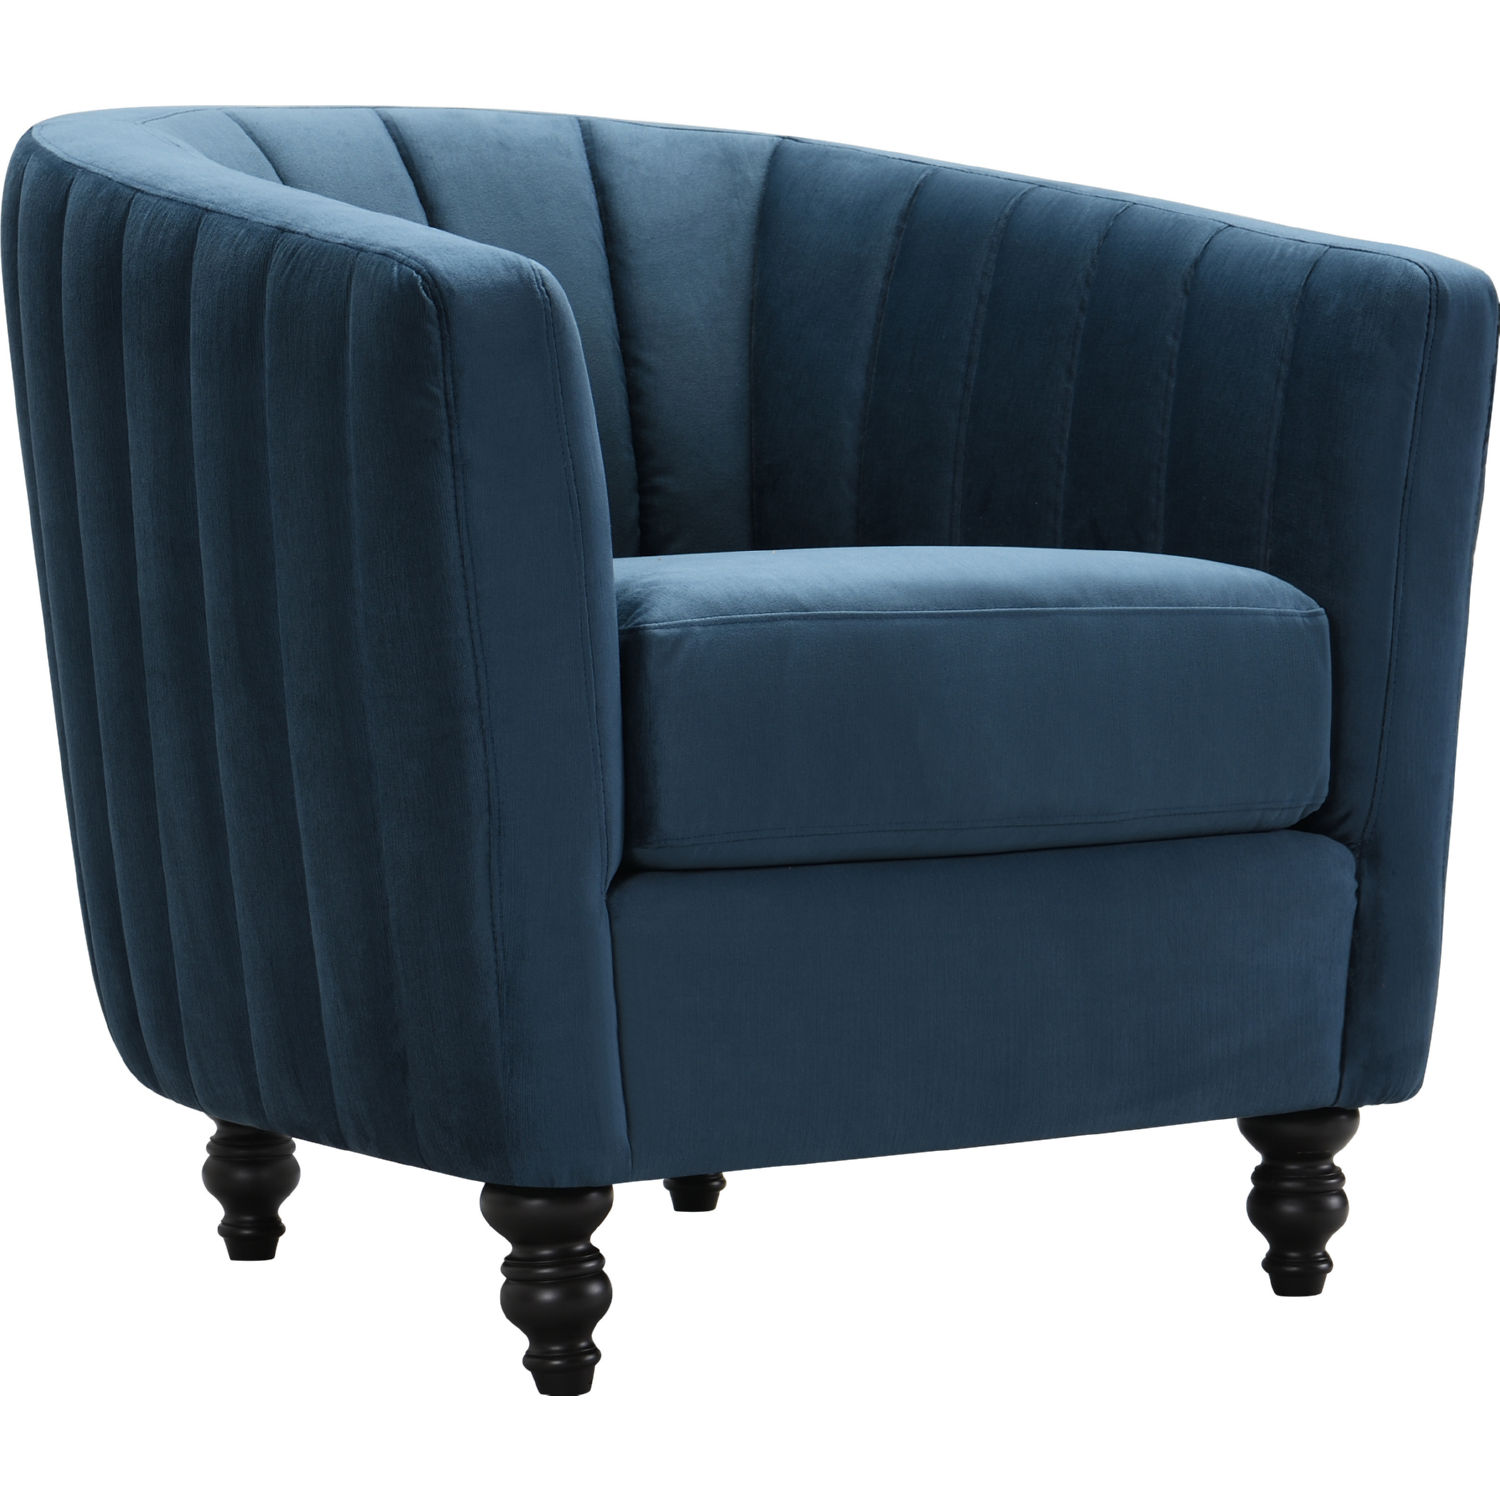 Riviera Accent Chair In Channel Tufted Blue Velvet On Turned Wood Legs By Chic Home